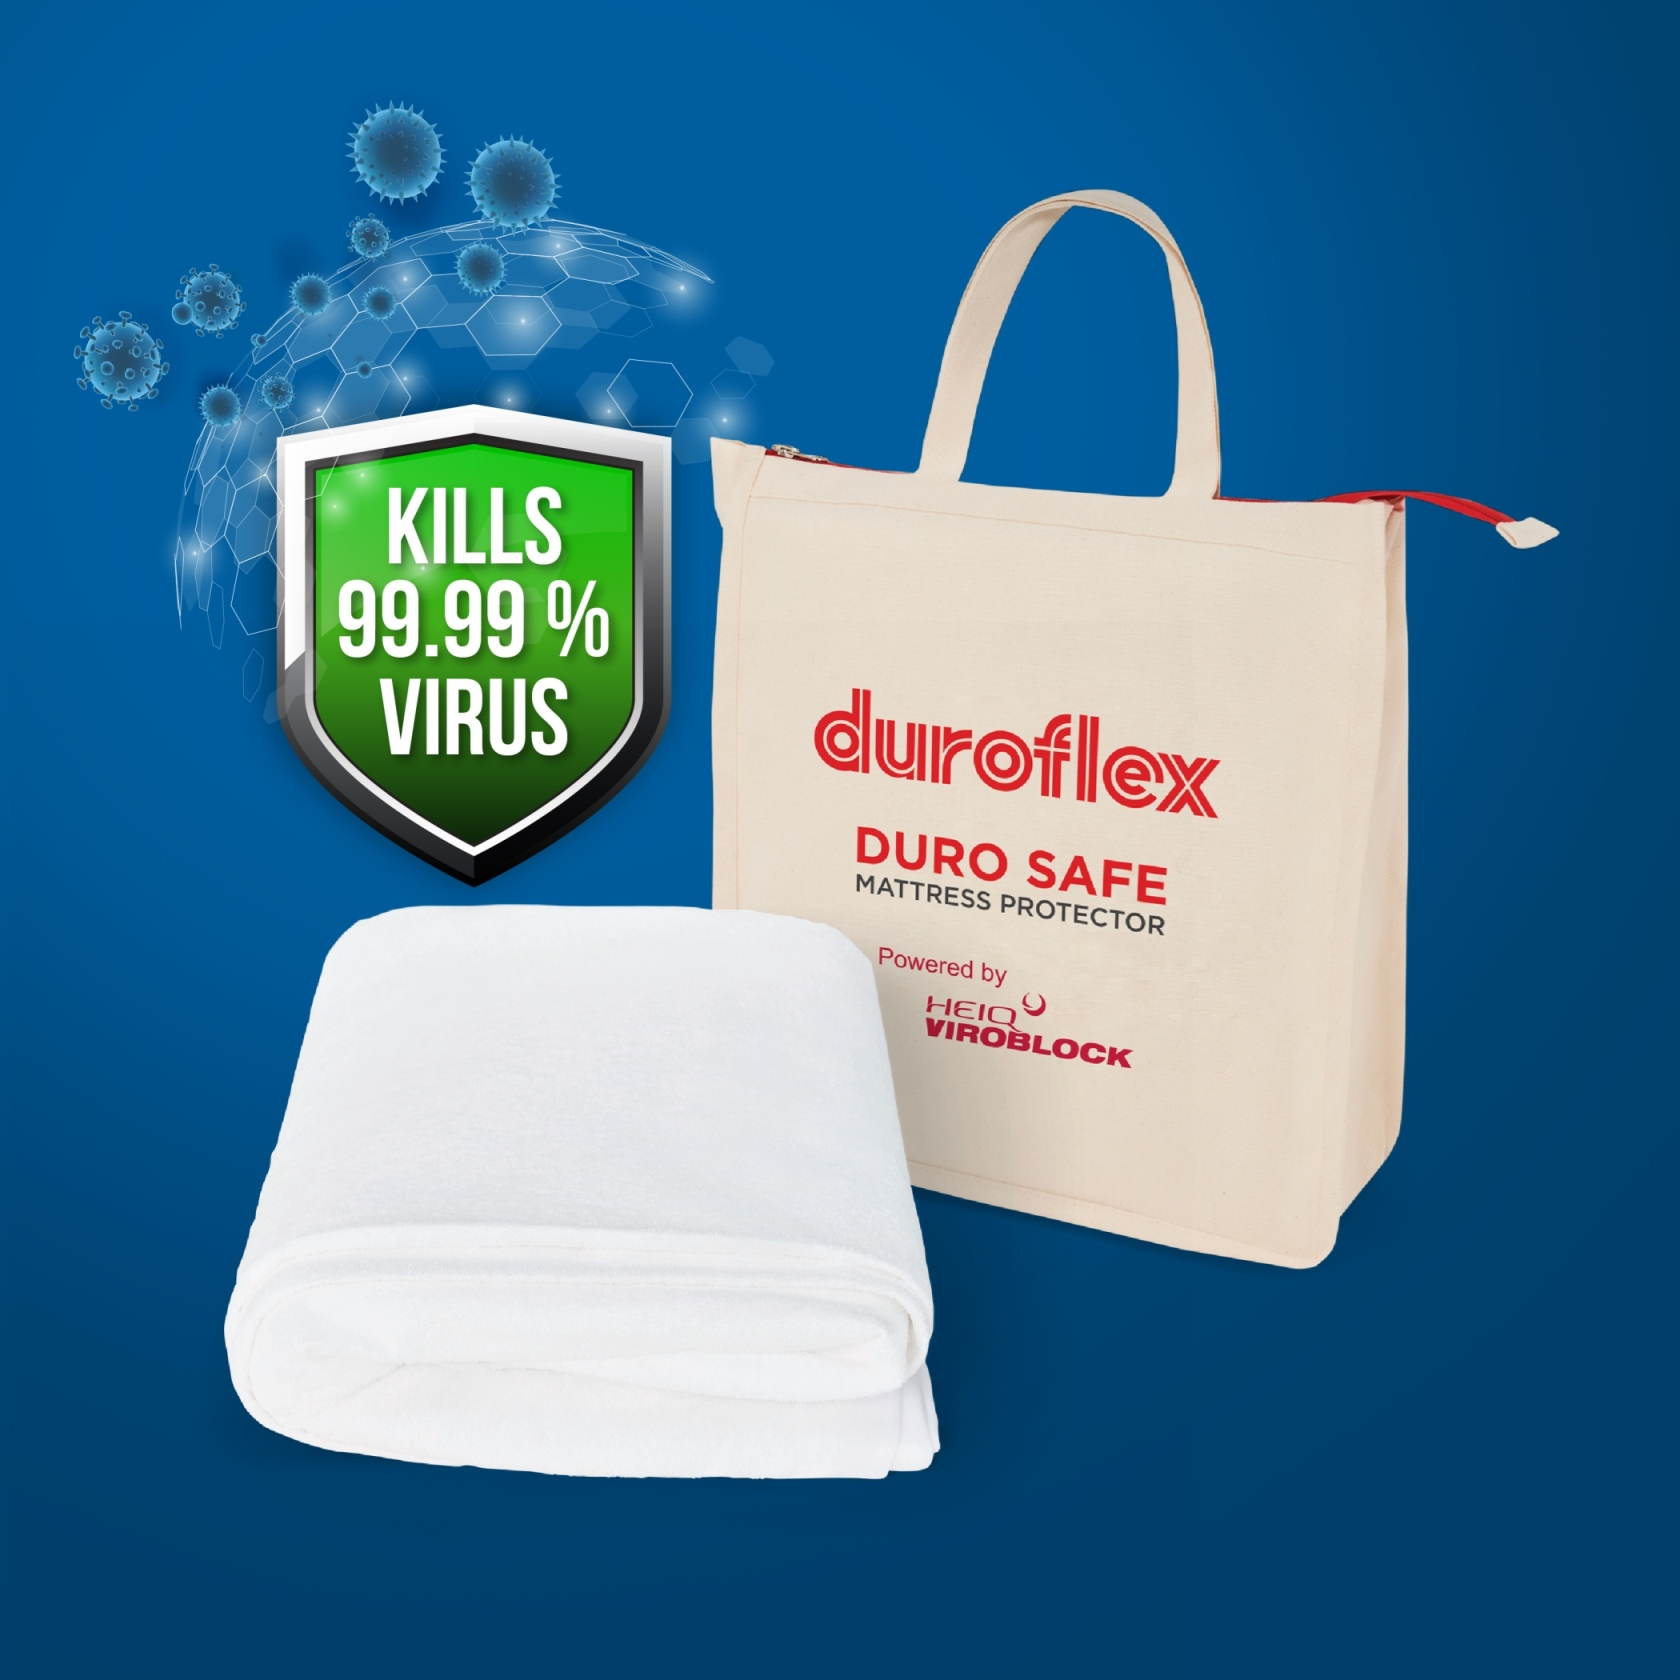 Duroflex launches India's first antiviral mattress protector, claims to kill 99.9% virus